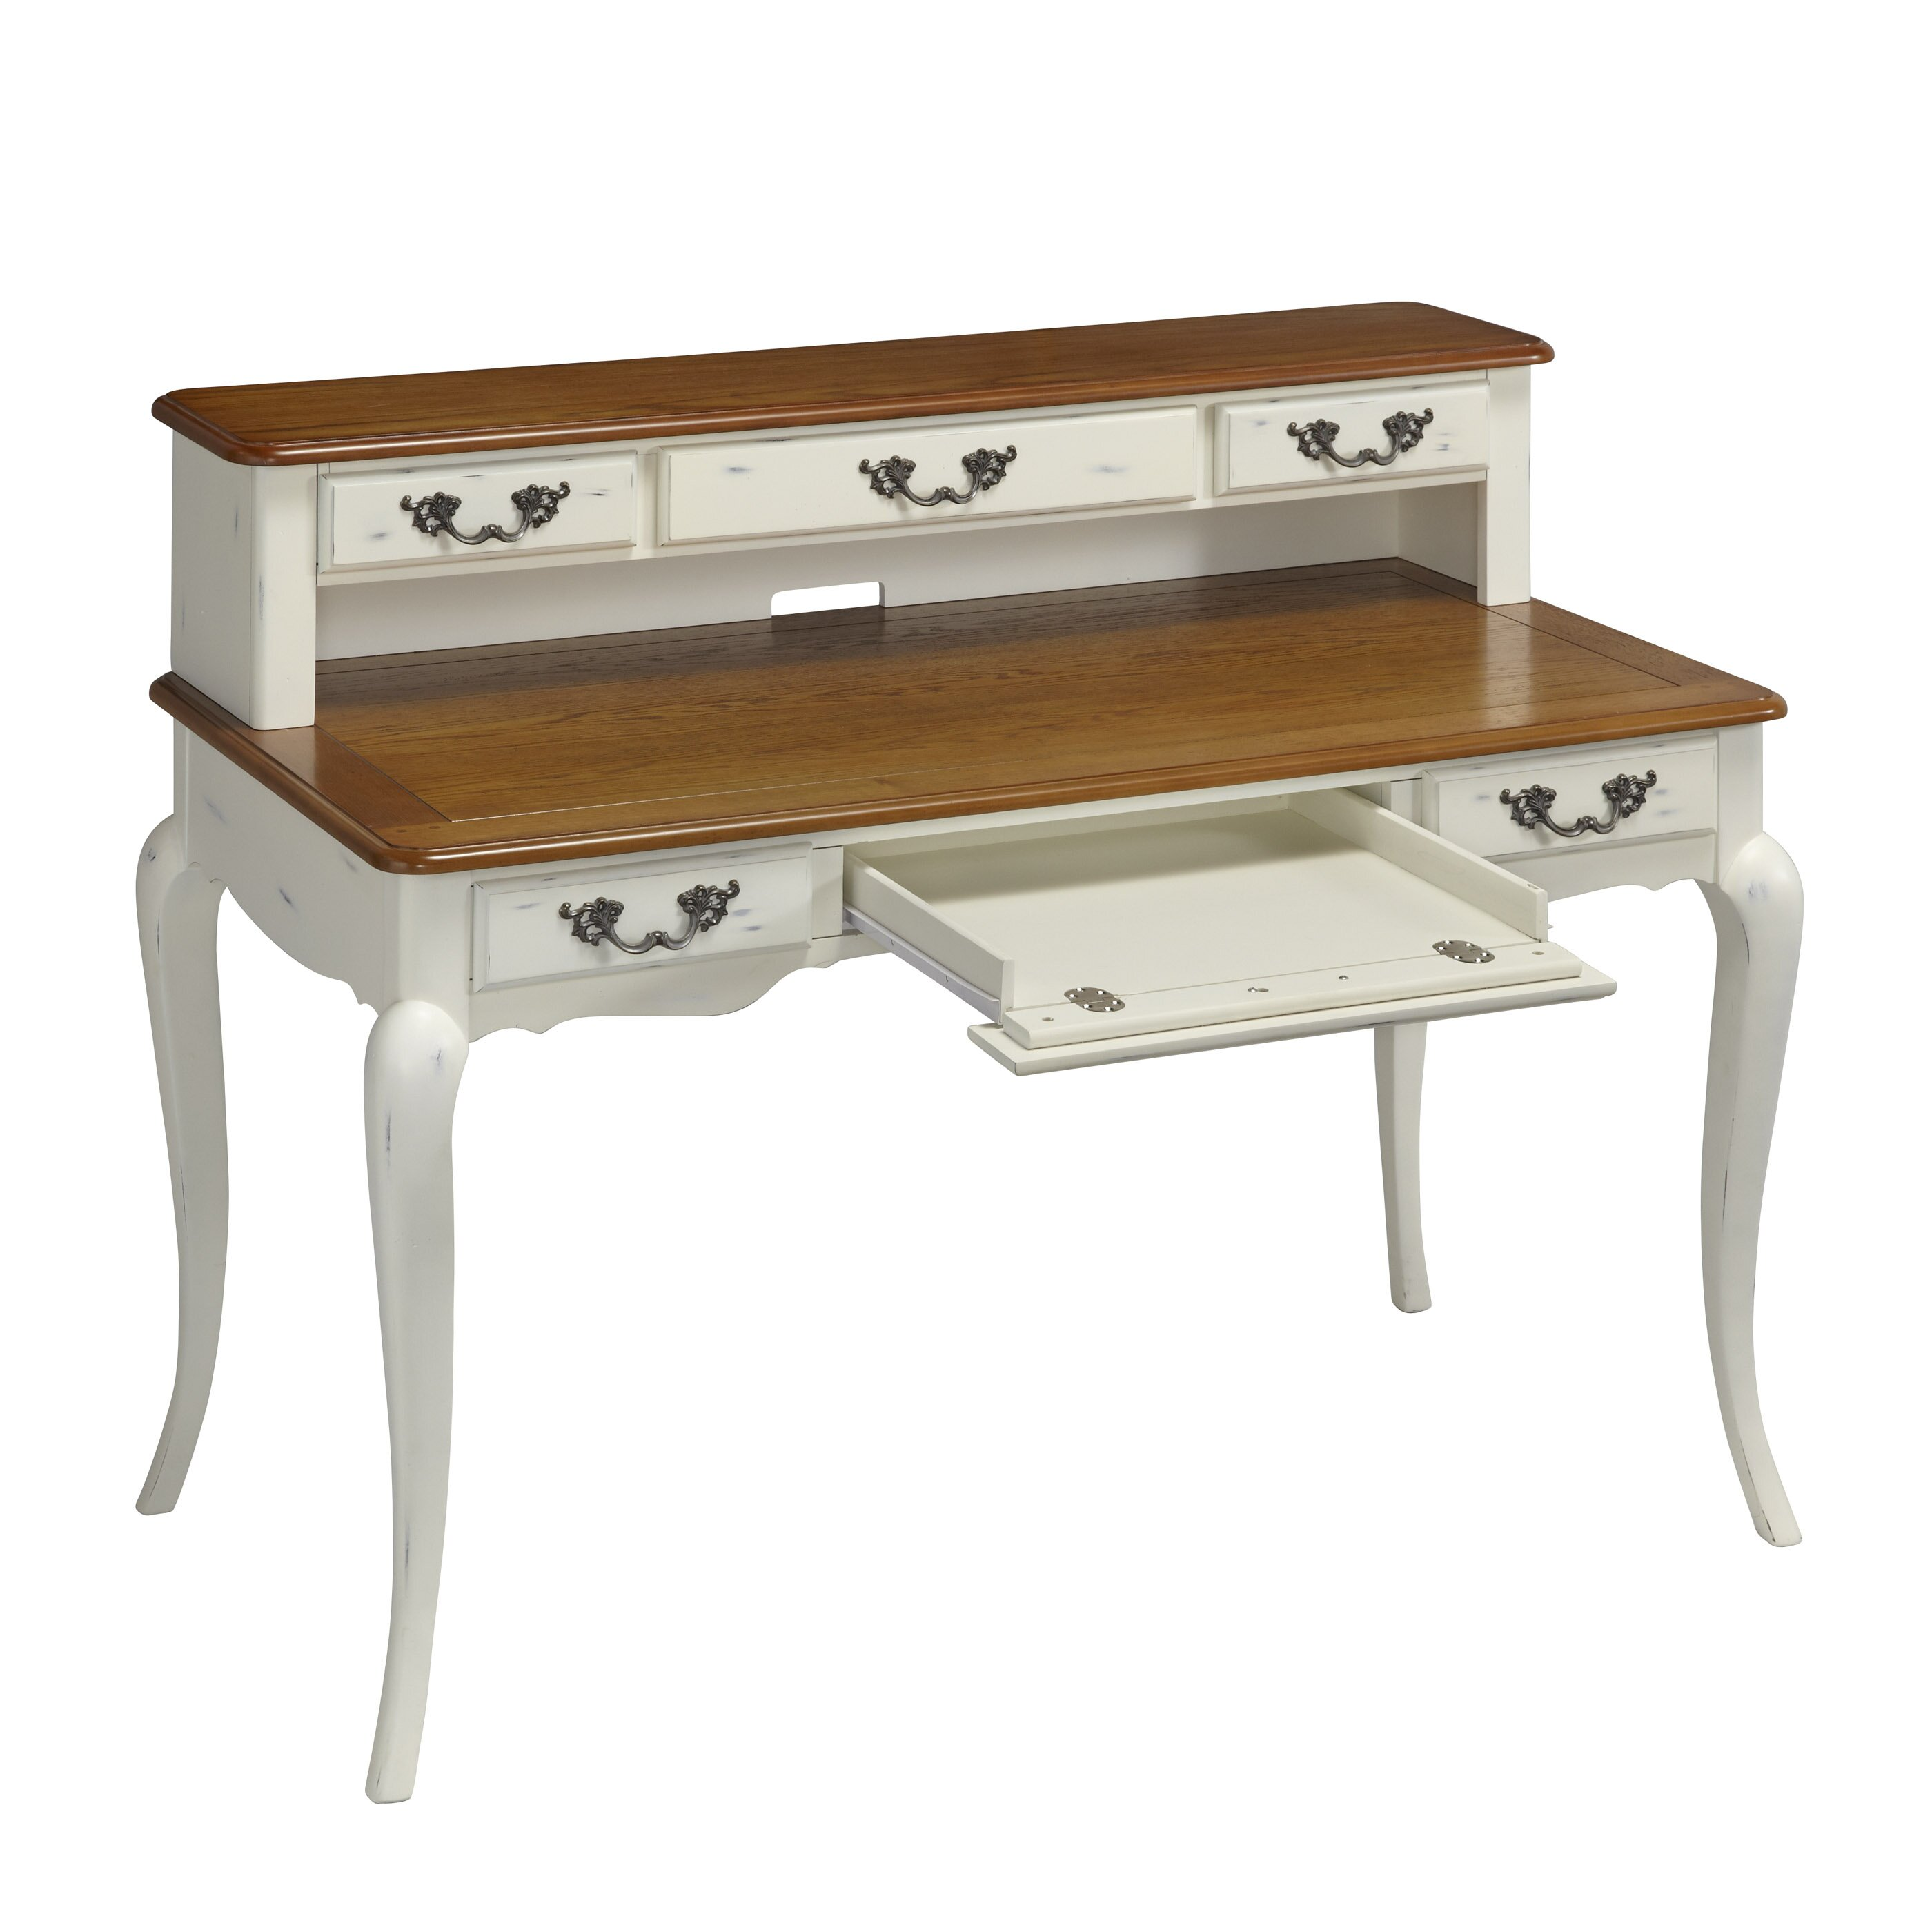 Very Impressive portraiture of Home Styles French Countryside Computer Desk & Reviews Wayfair with #6D4A29 color and 2800x2800 pixels